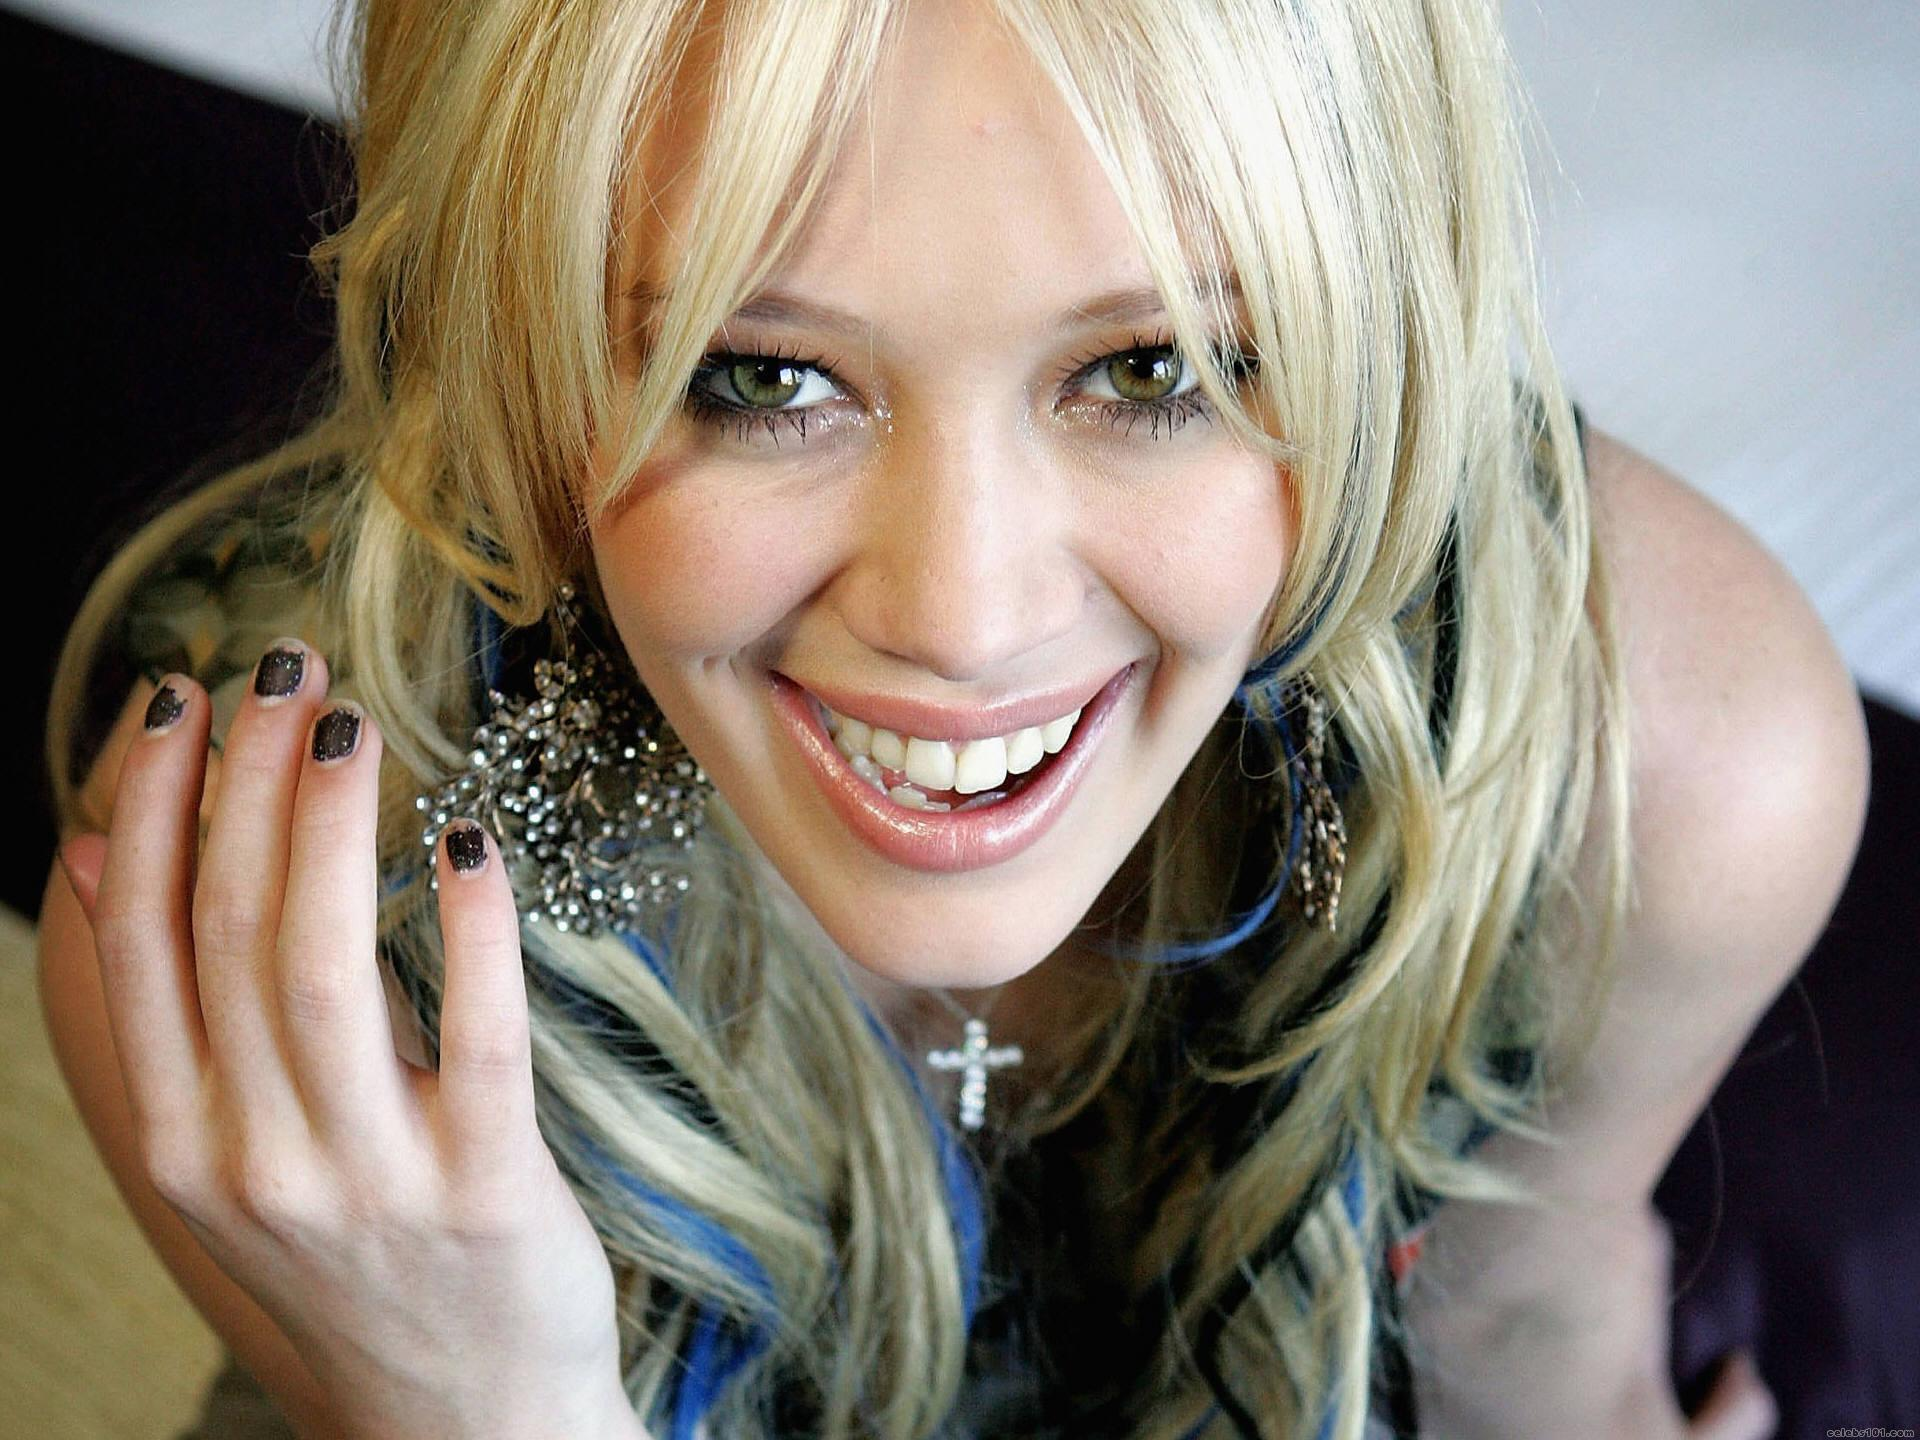 http://images2.fanpop.com/images/photos/4700000/Hilary-Duff-hilary-duff-4730413-1920-1440.jpg